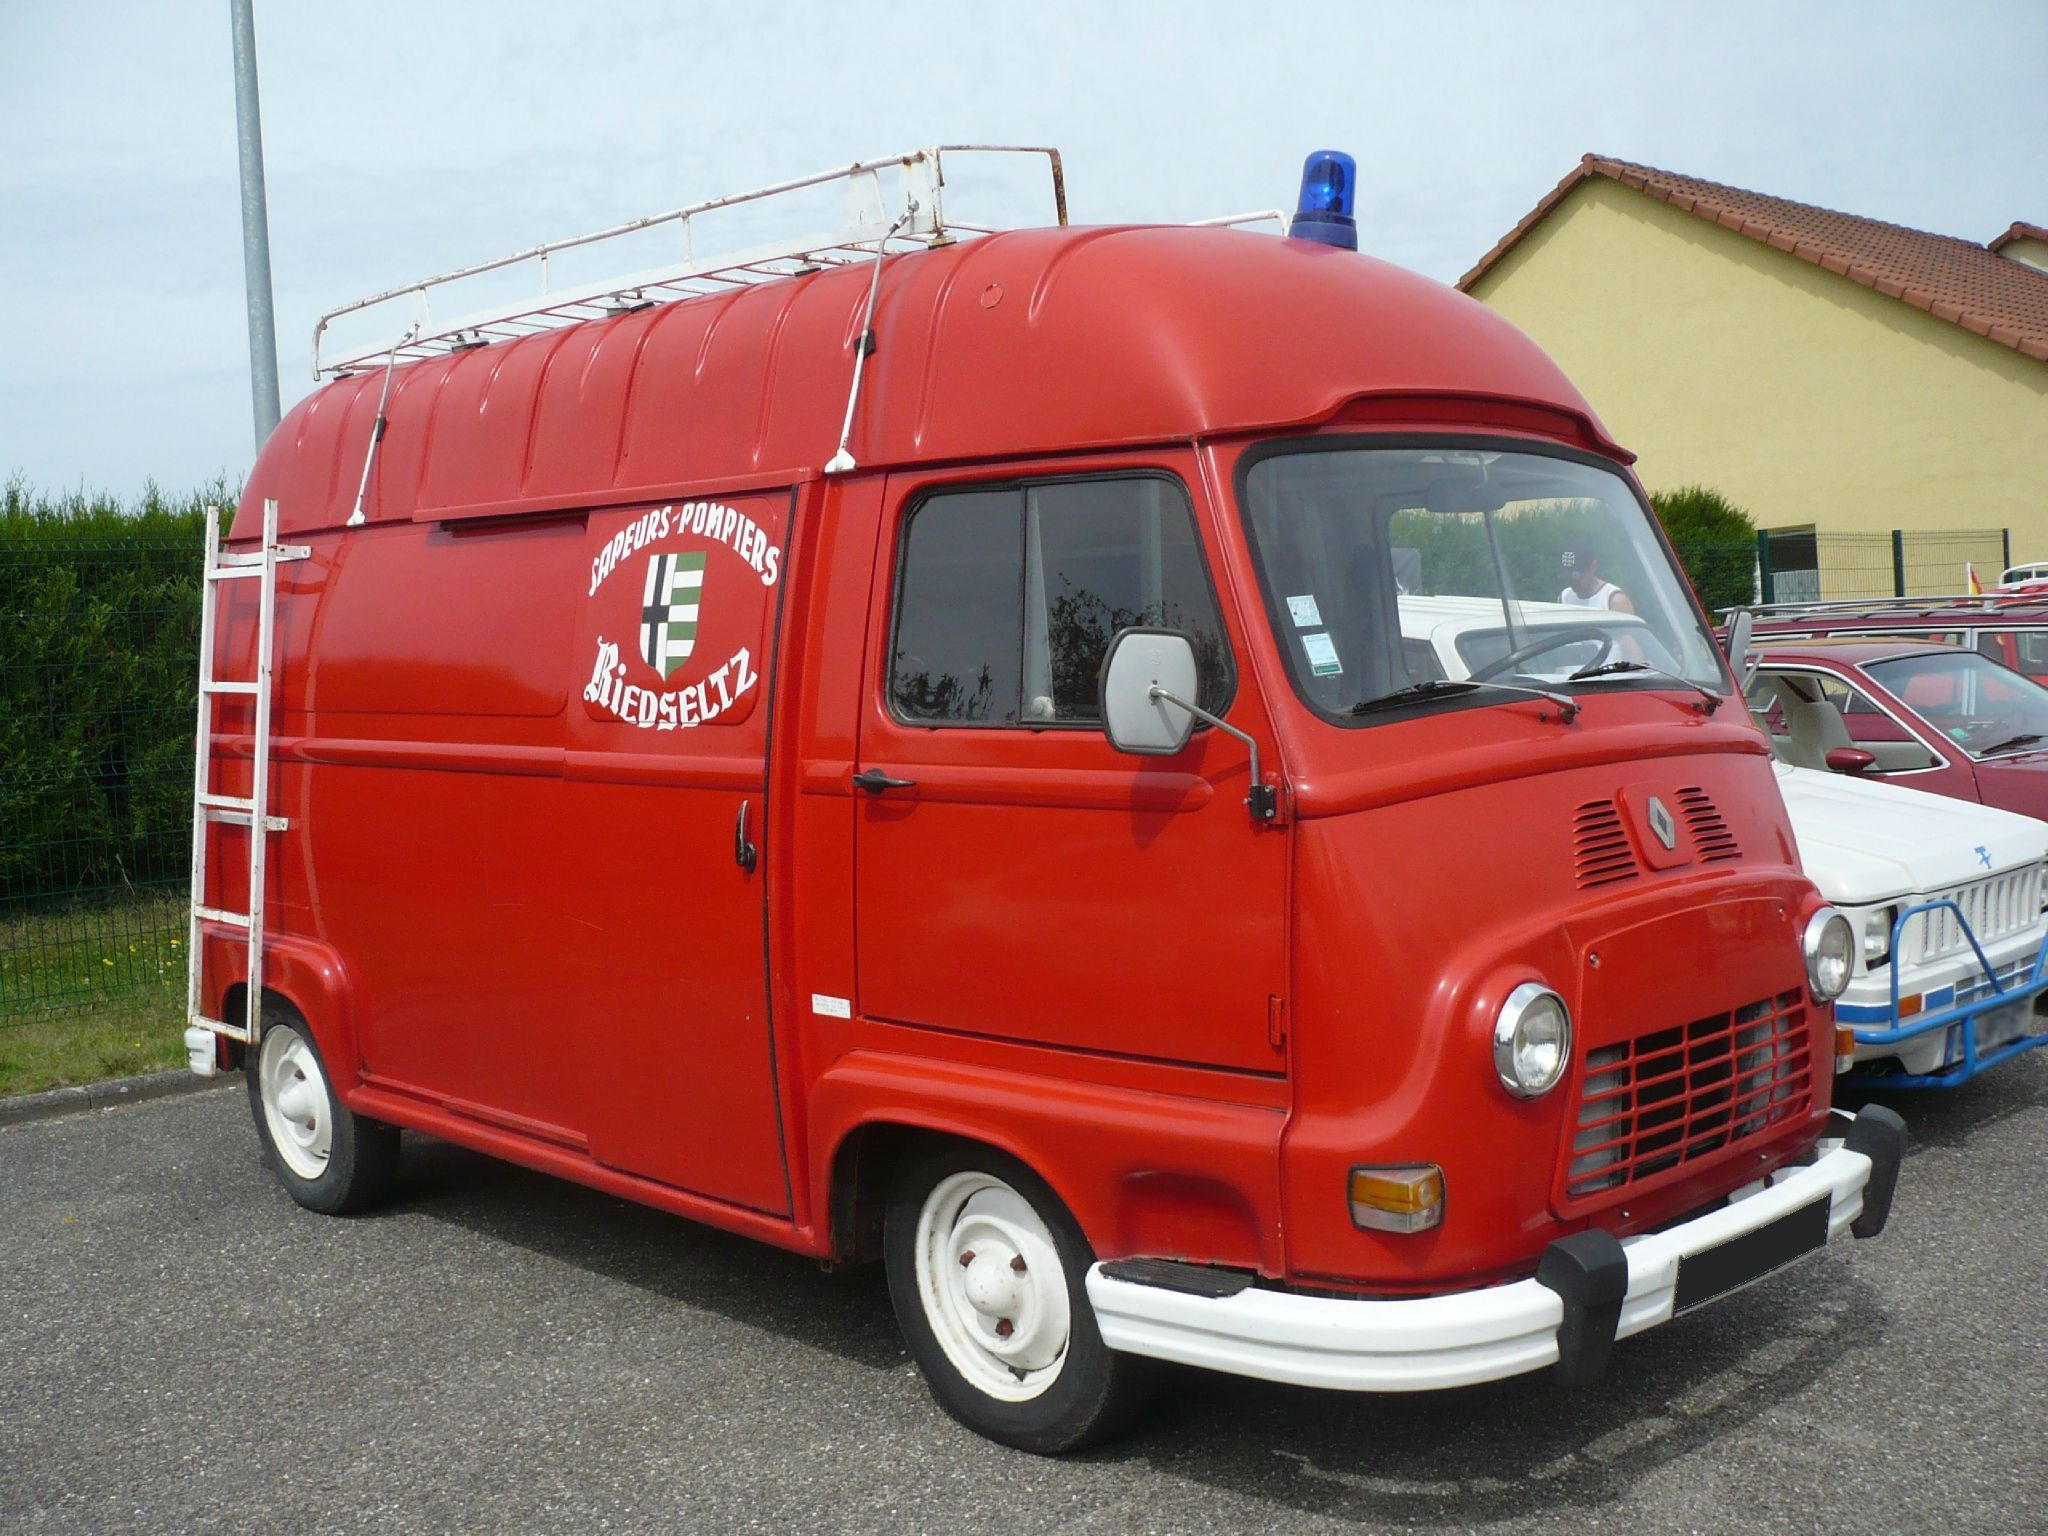 renault estafette sur lev e des sapeurs pompiers 1977 vroom vroom renault estafette sapeur. Black Bedroom Furniture Sets. Home Design Ideas